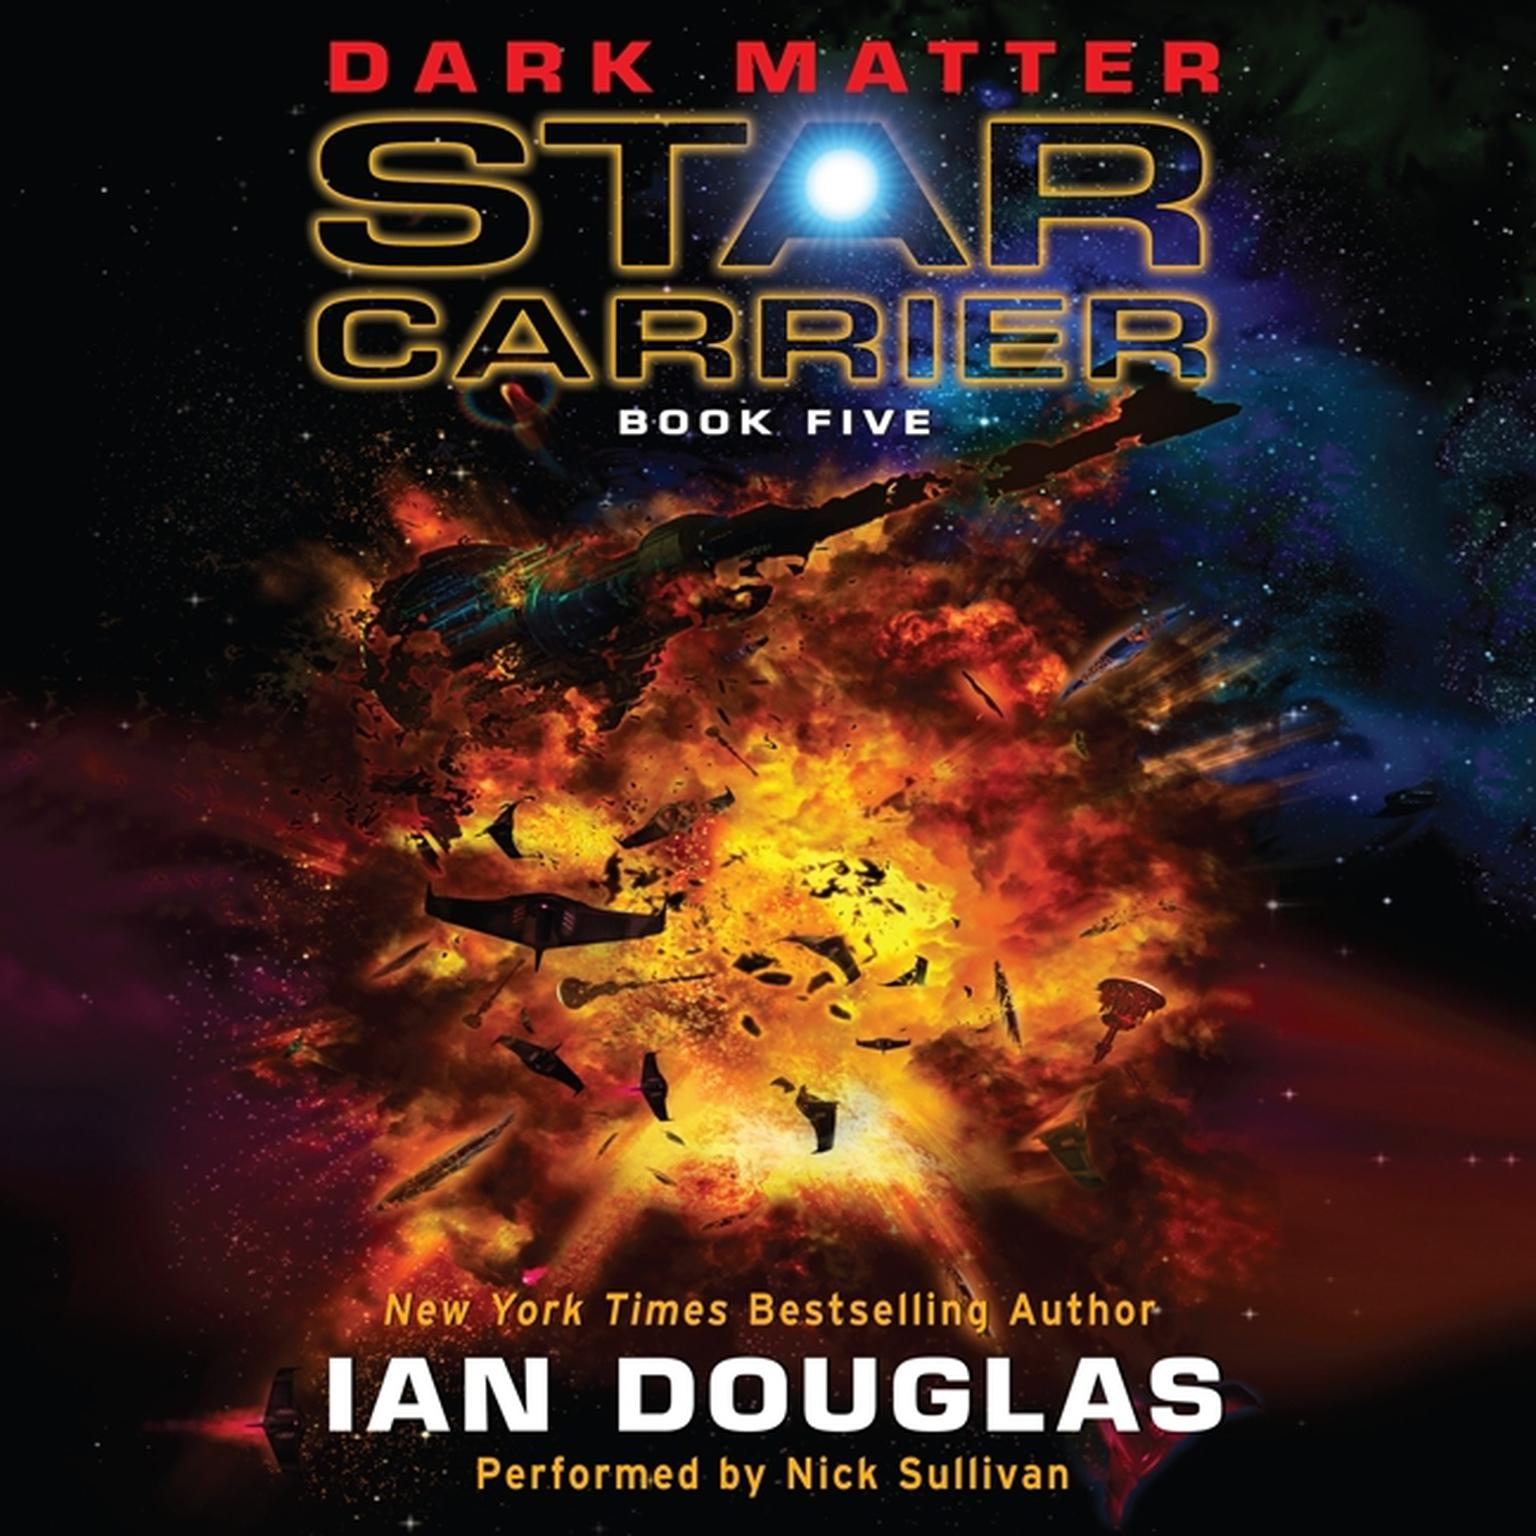 Printable Dark Matter: Star Carrier: Book Five Audiobook Cover Art